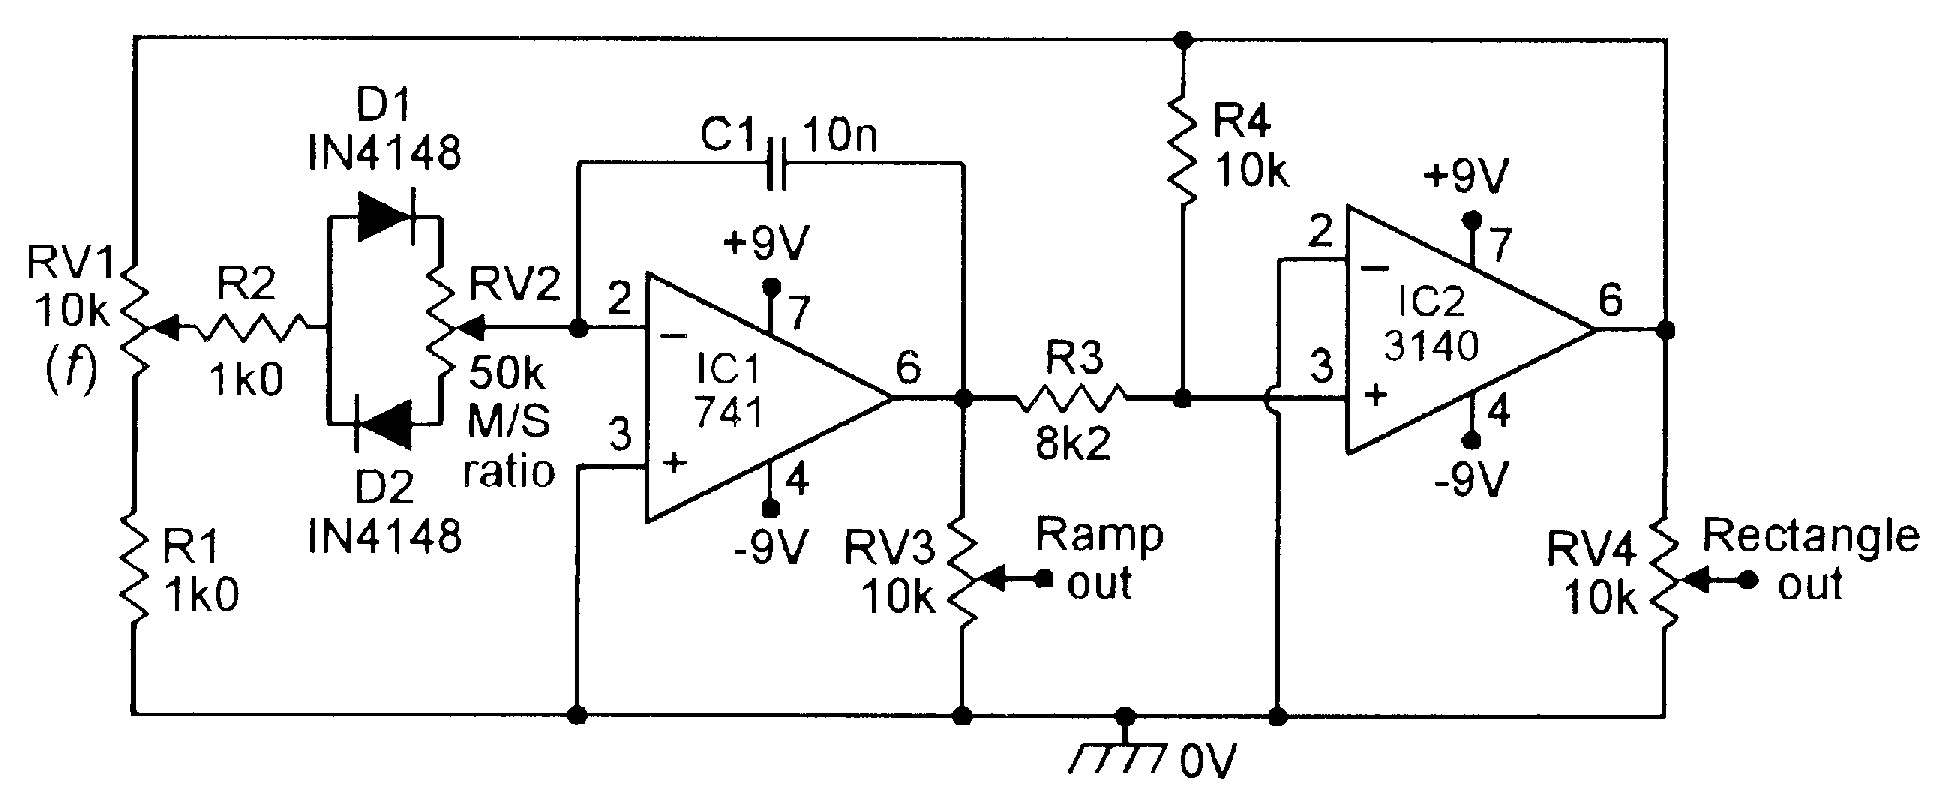 Op Amp Cookbook Part 3 Nuts Volts Magazine Simple Low Battery Indicator Circuit Using Ic 741 Homemade 100hz 1khz Ramp Rectangle Generator With Variable Slope M S Ratio